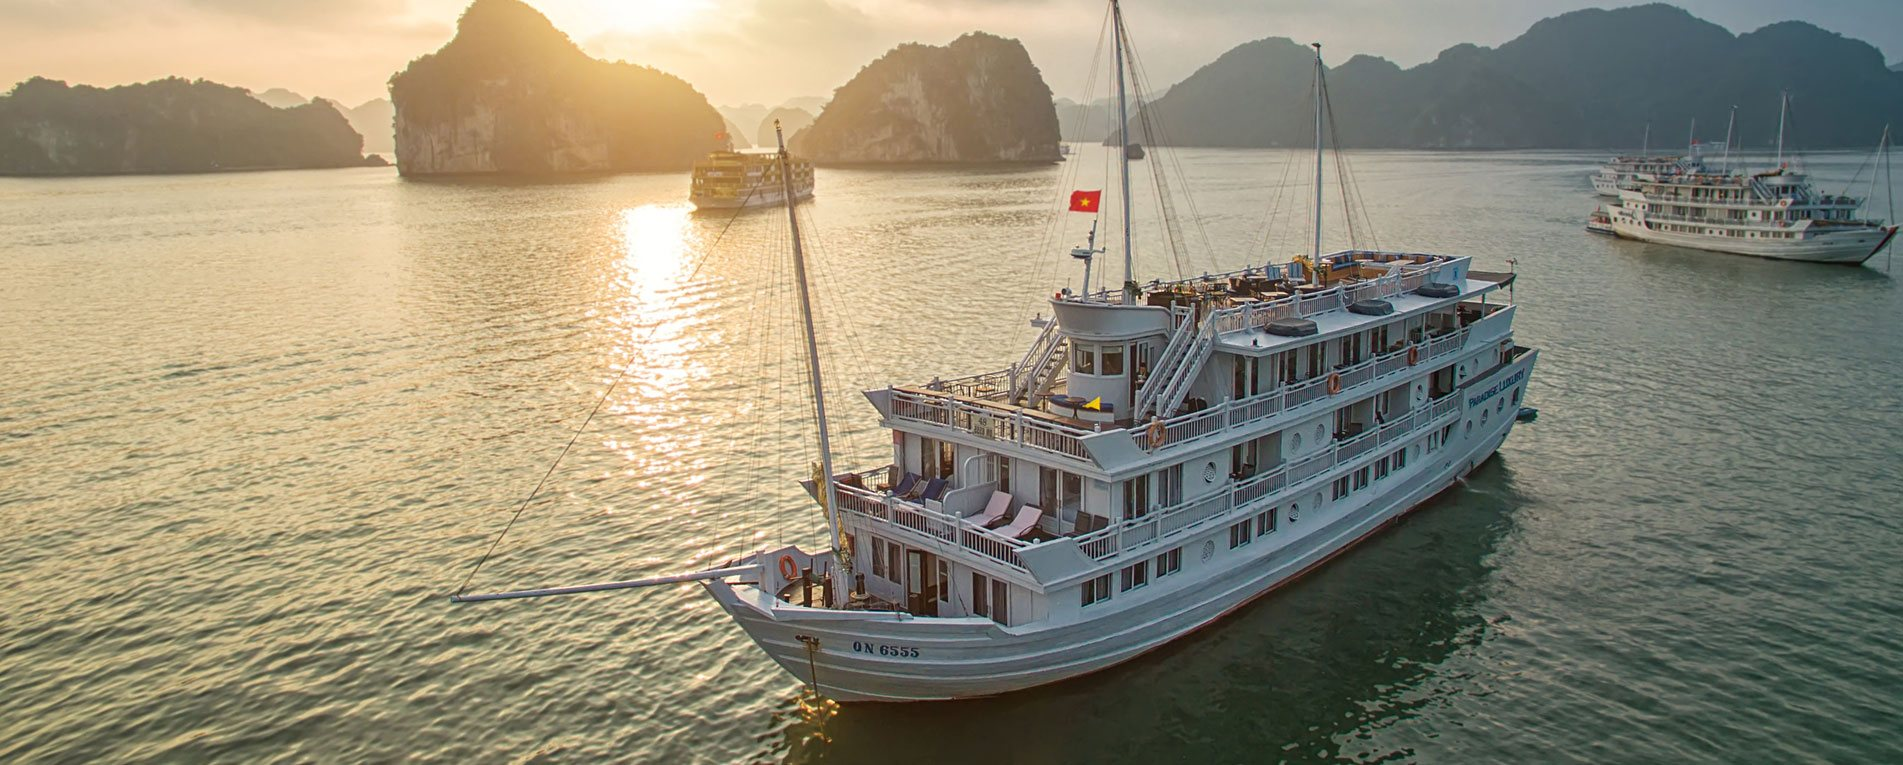 Things to do while cruising Halong Bay